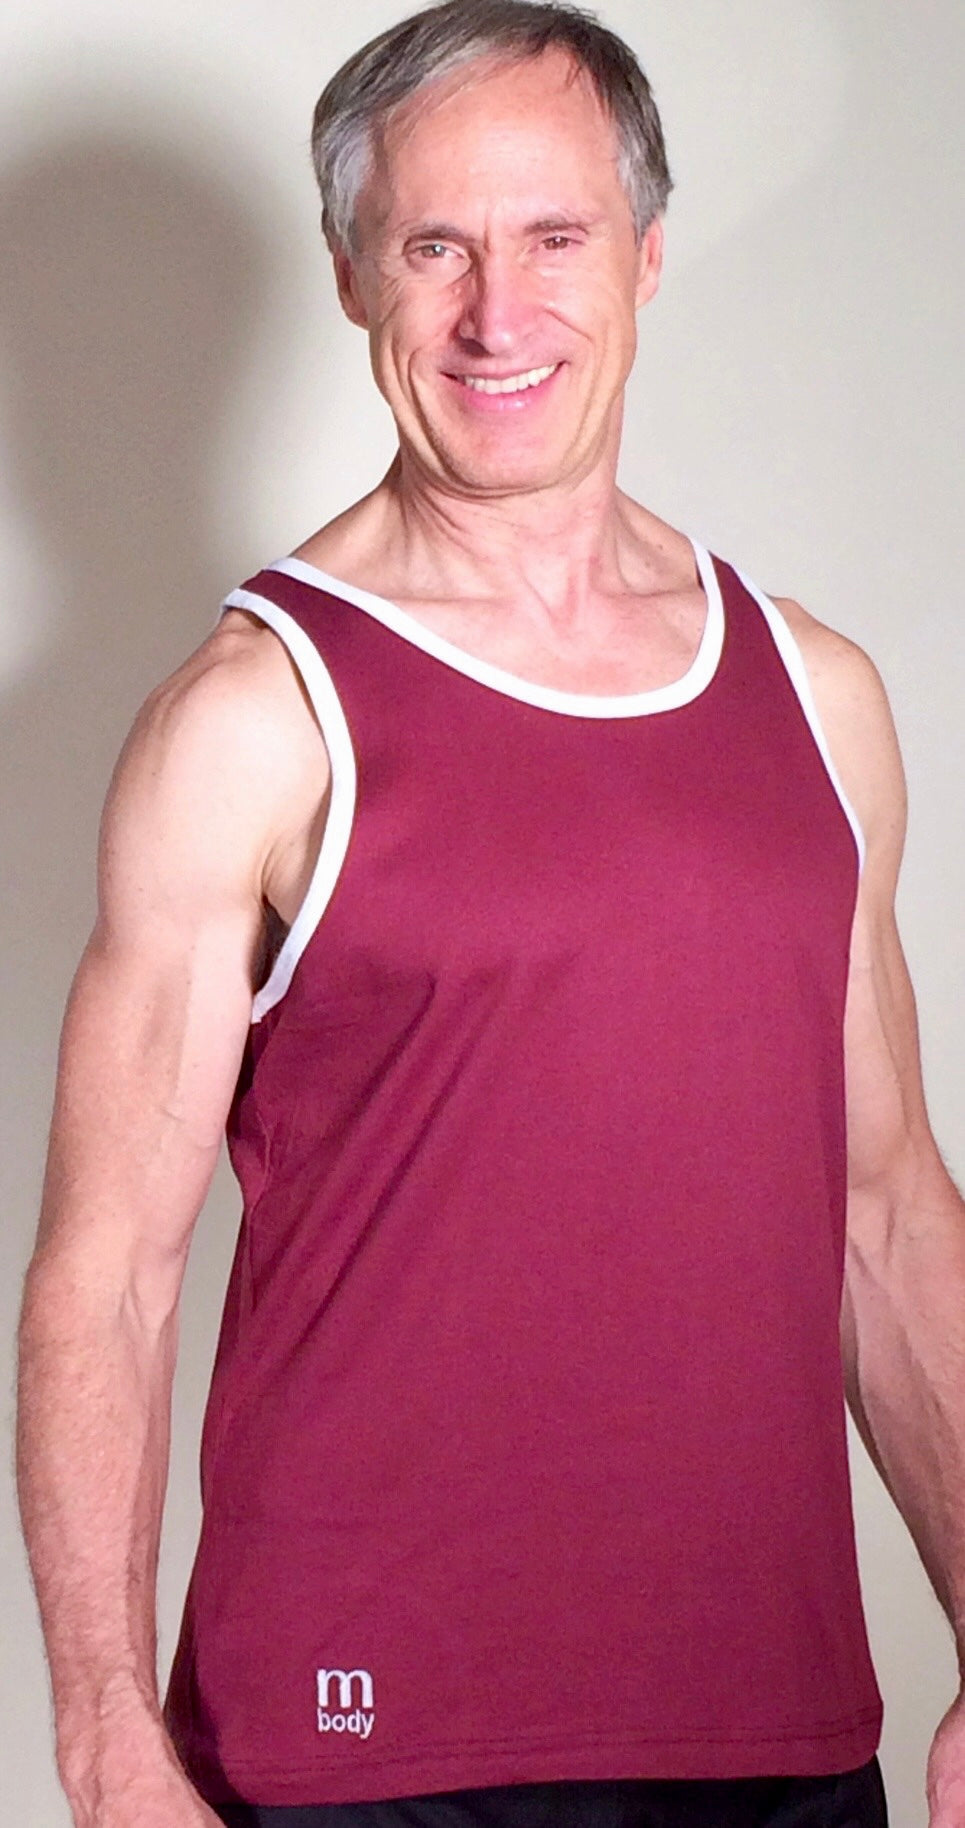 The Power Yoga Tank Top